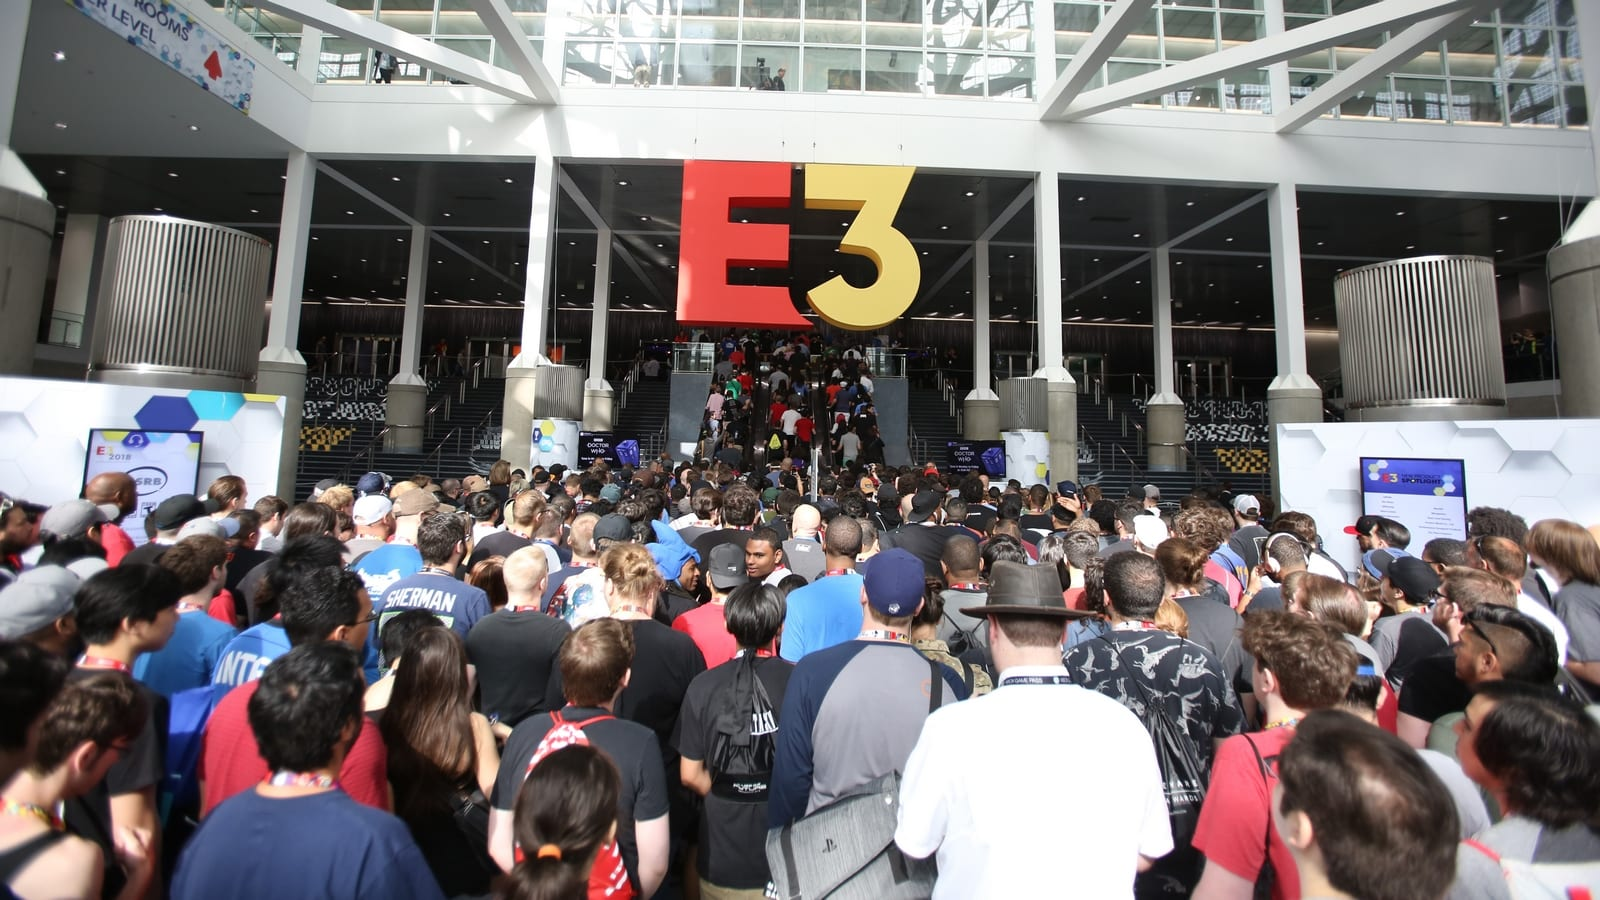 the annual E3 event takes place in person